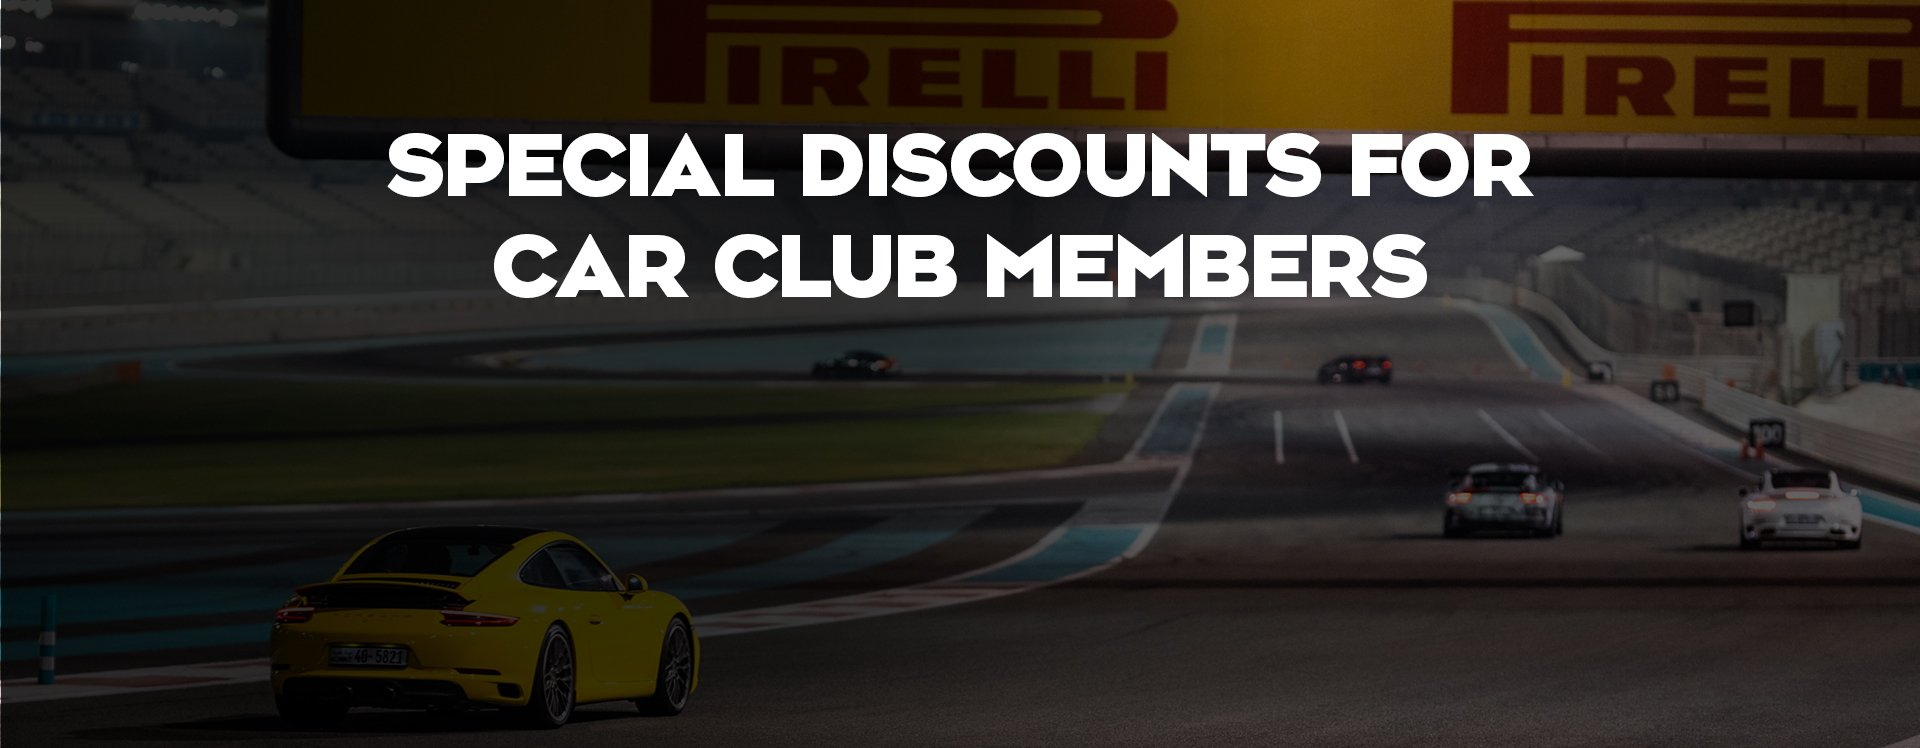 Special discounts for car club members